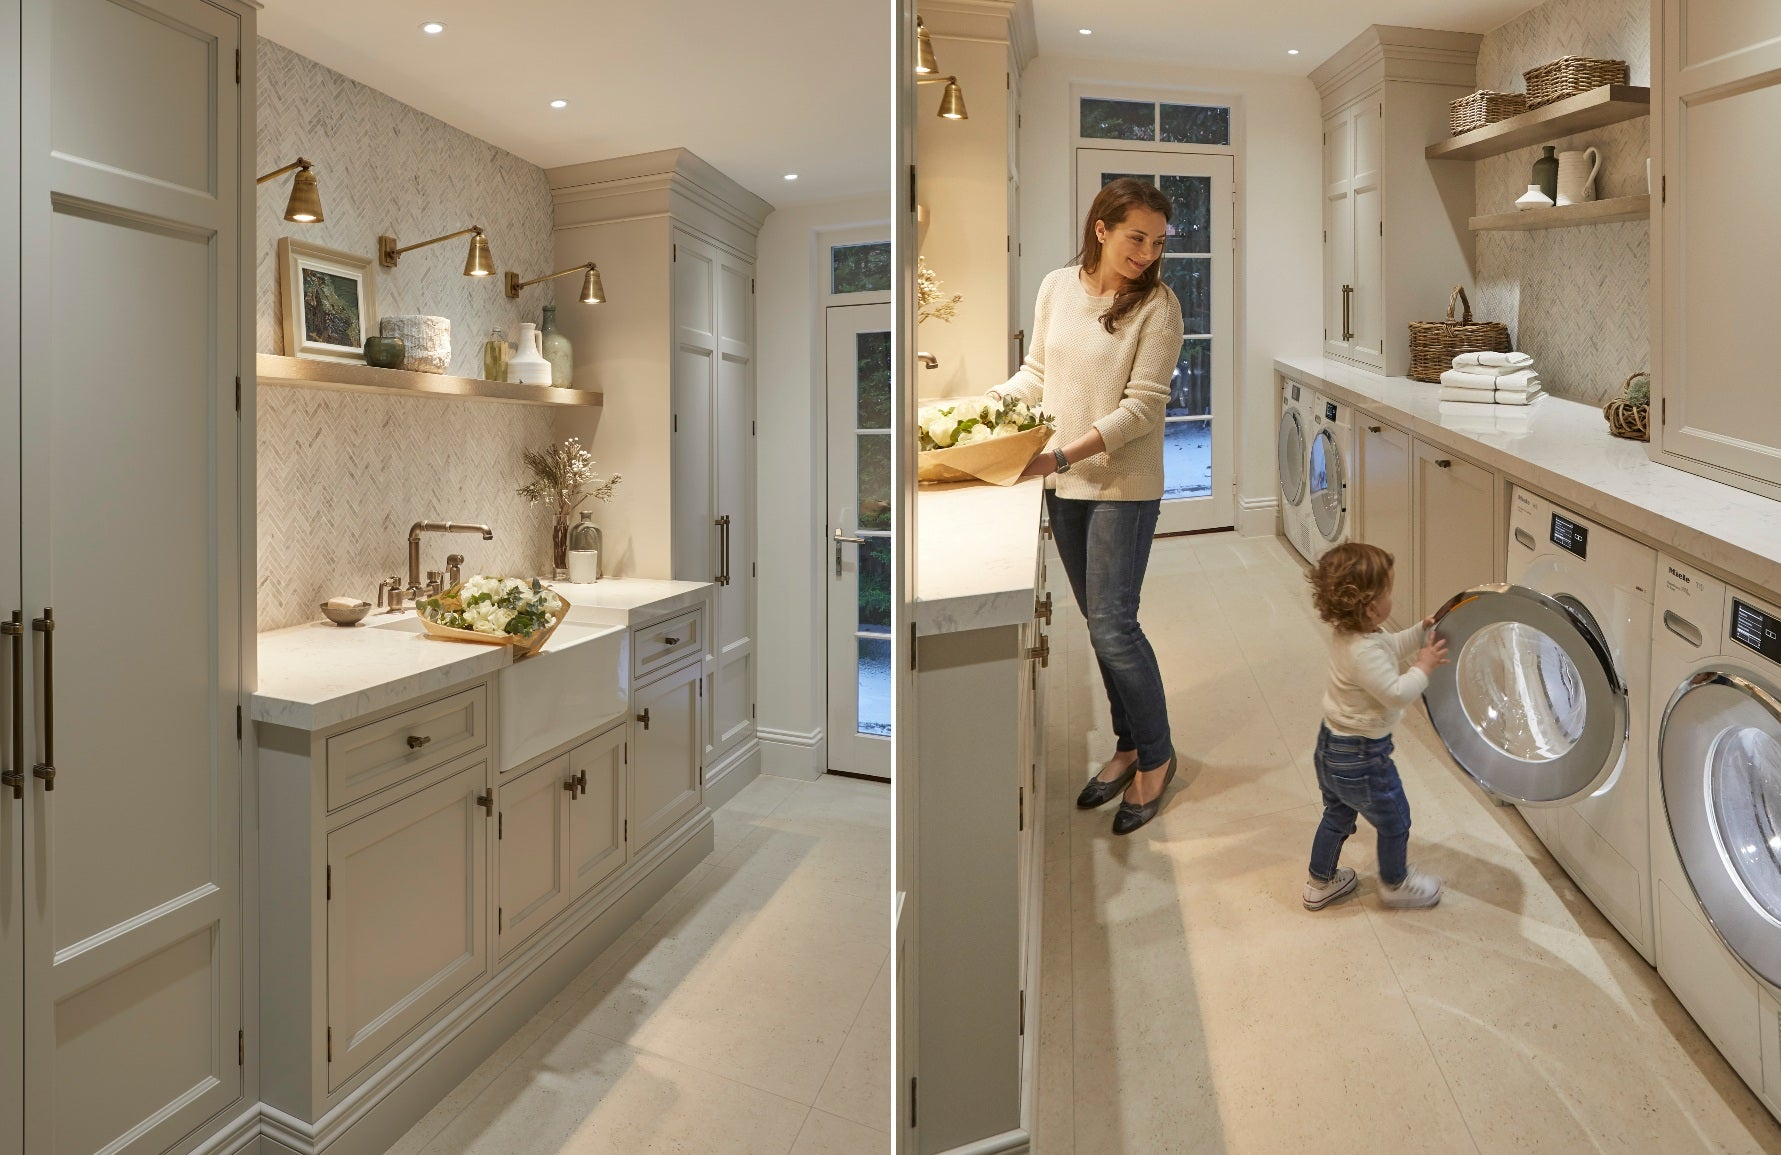 Luxury Utility Room Ideas and Designs For Dreamy Chore Time with Sophie Paterson | Bespoke Utility Room Cabinetry | Read more in the LuxDeco Style Guide